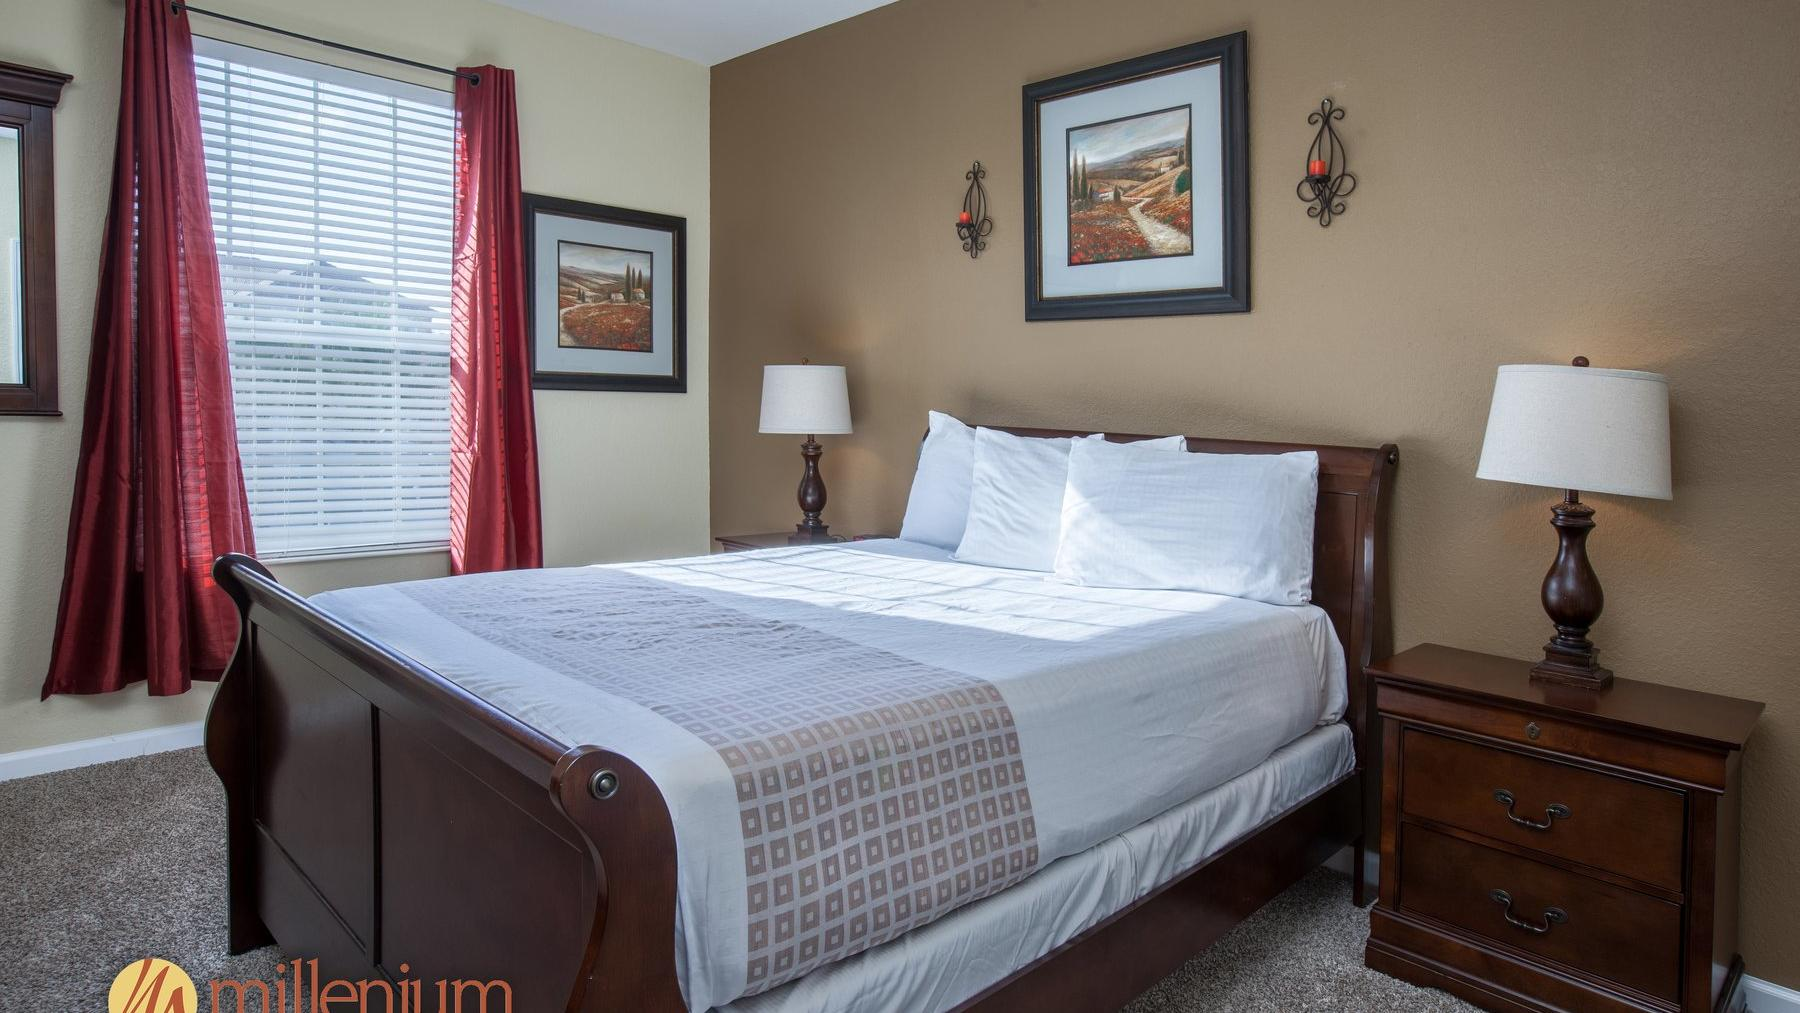 Queen bed with lamps on nightstands